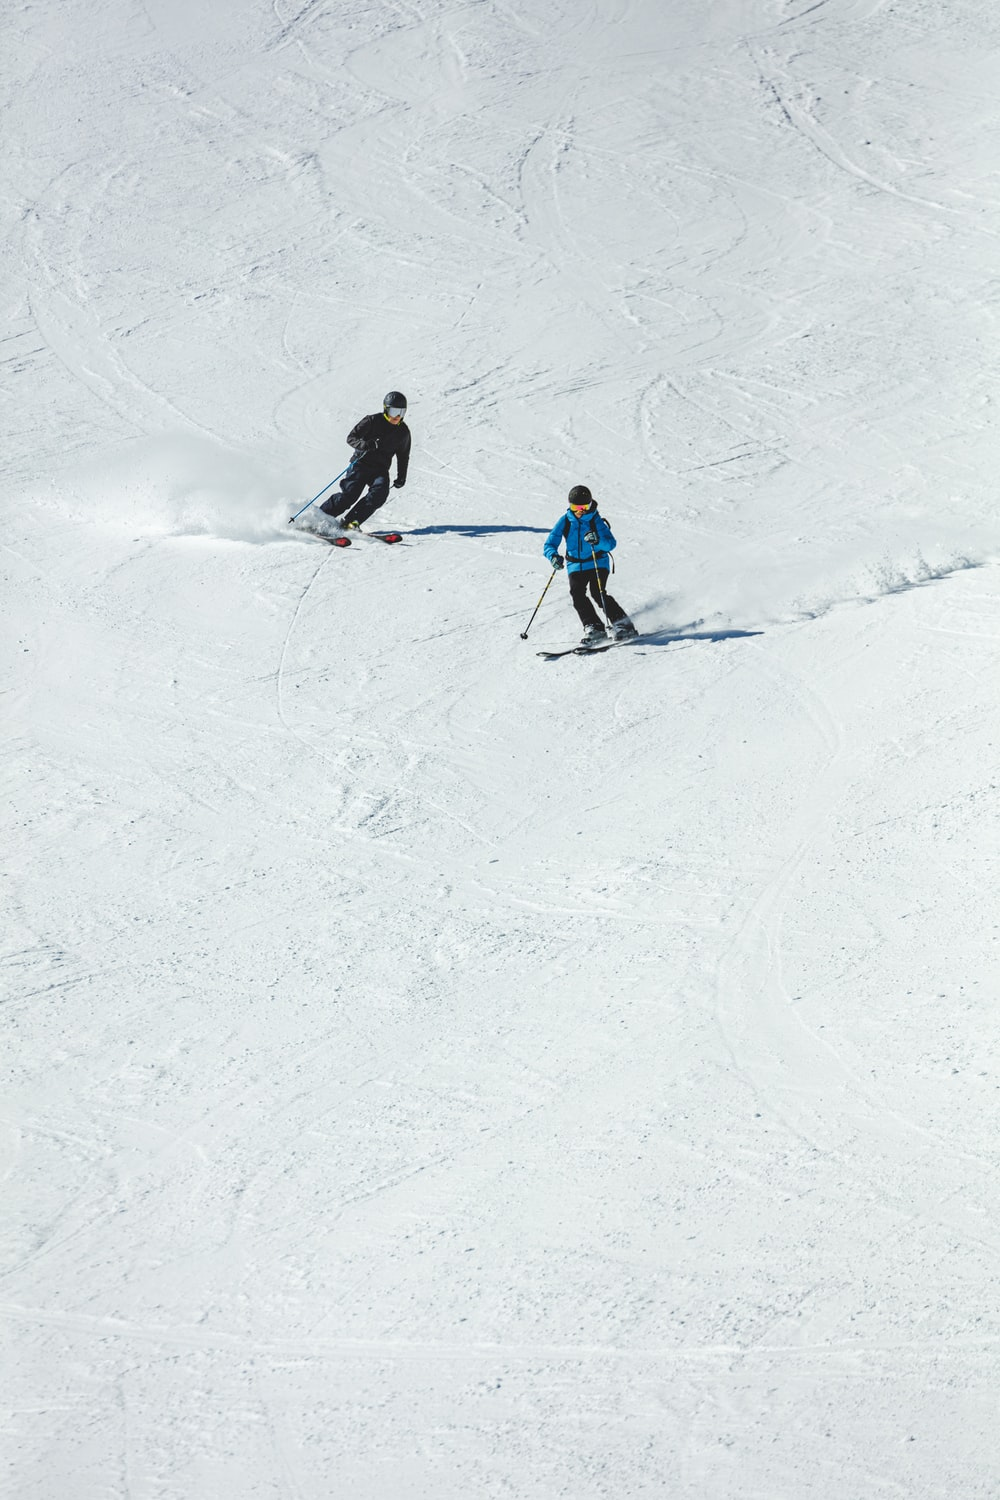 person in blue jacket and black pants riding ski blades on snow covered ground during daytime